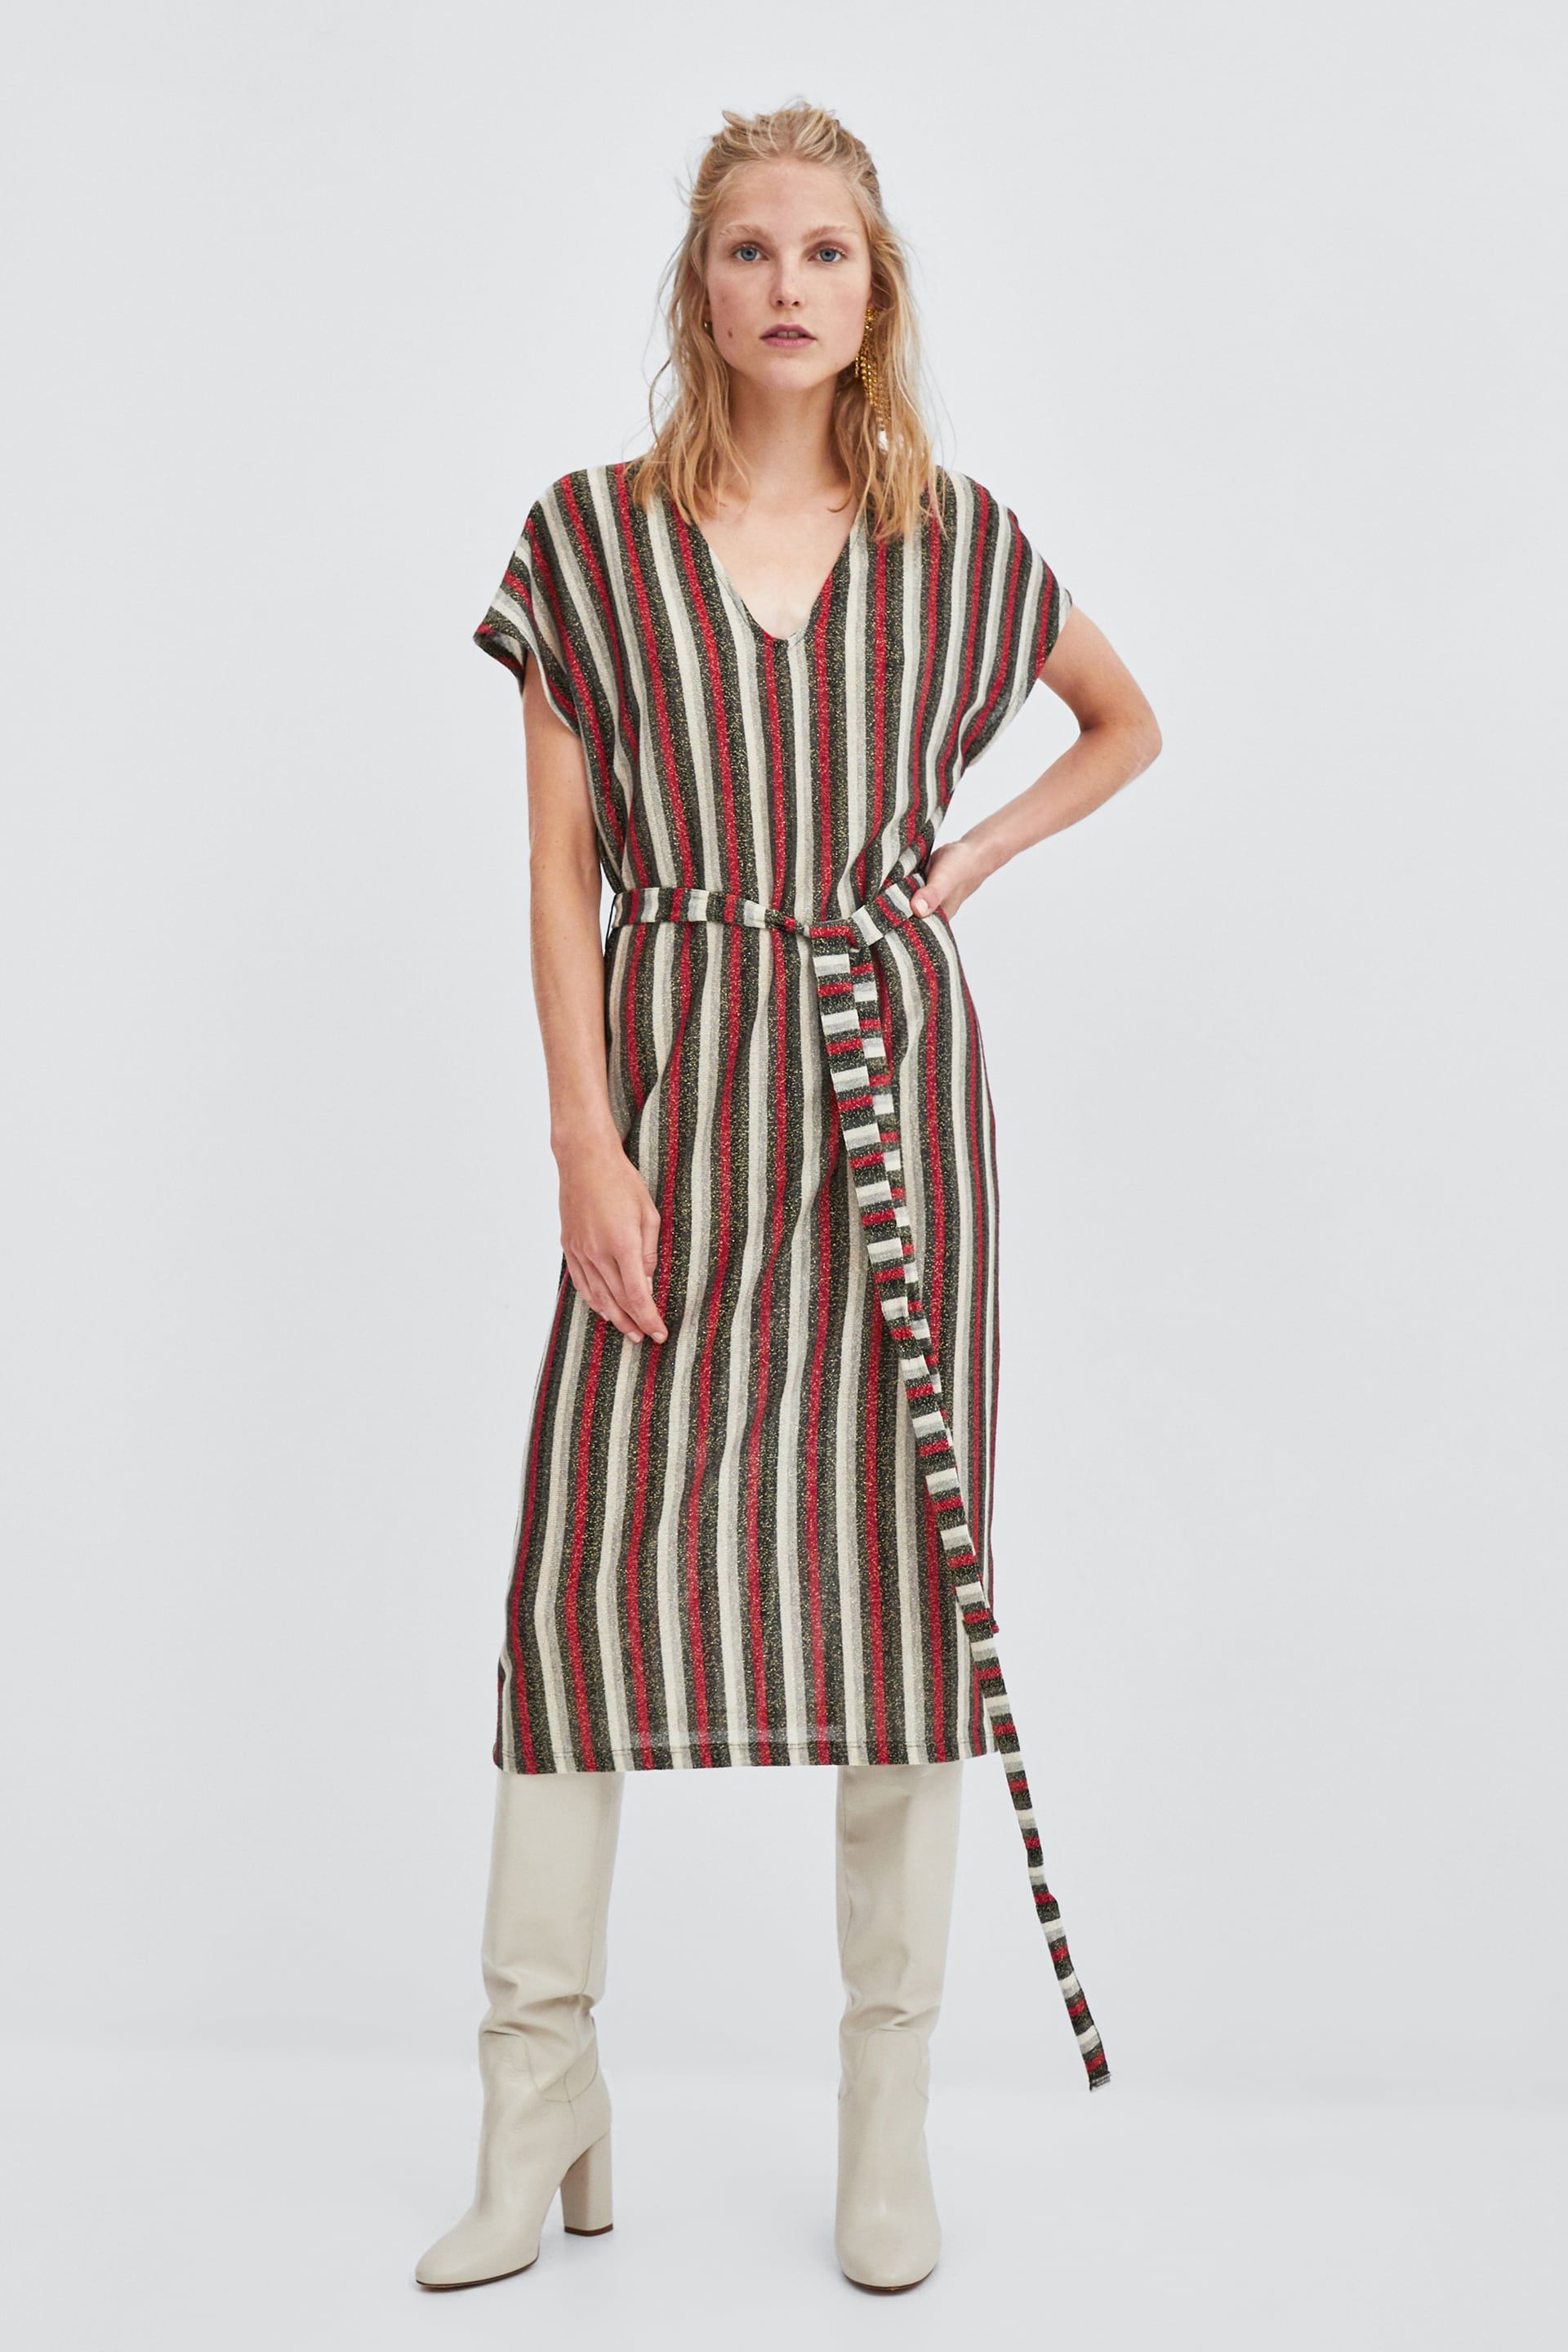 e542ae97 Image 1 of TEXTURED DRESS from Zara | clothes | Dresses, Summer ...